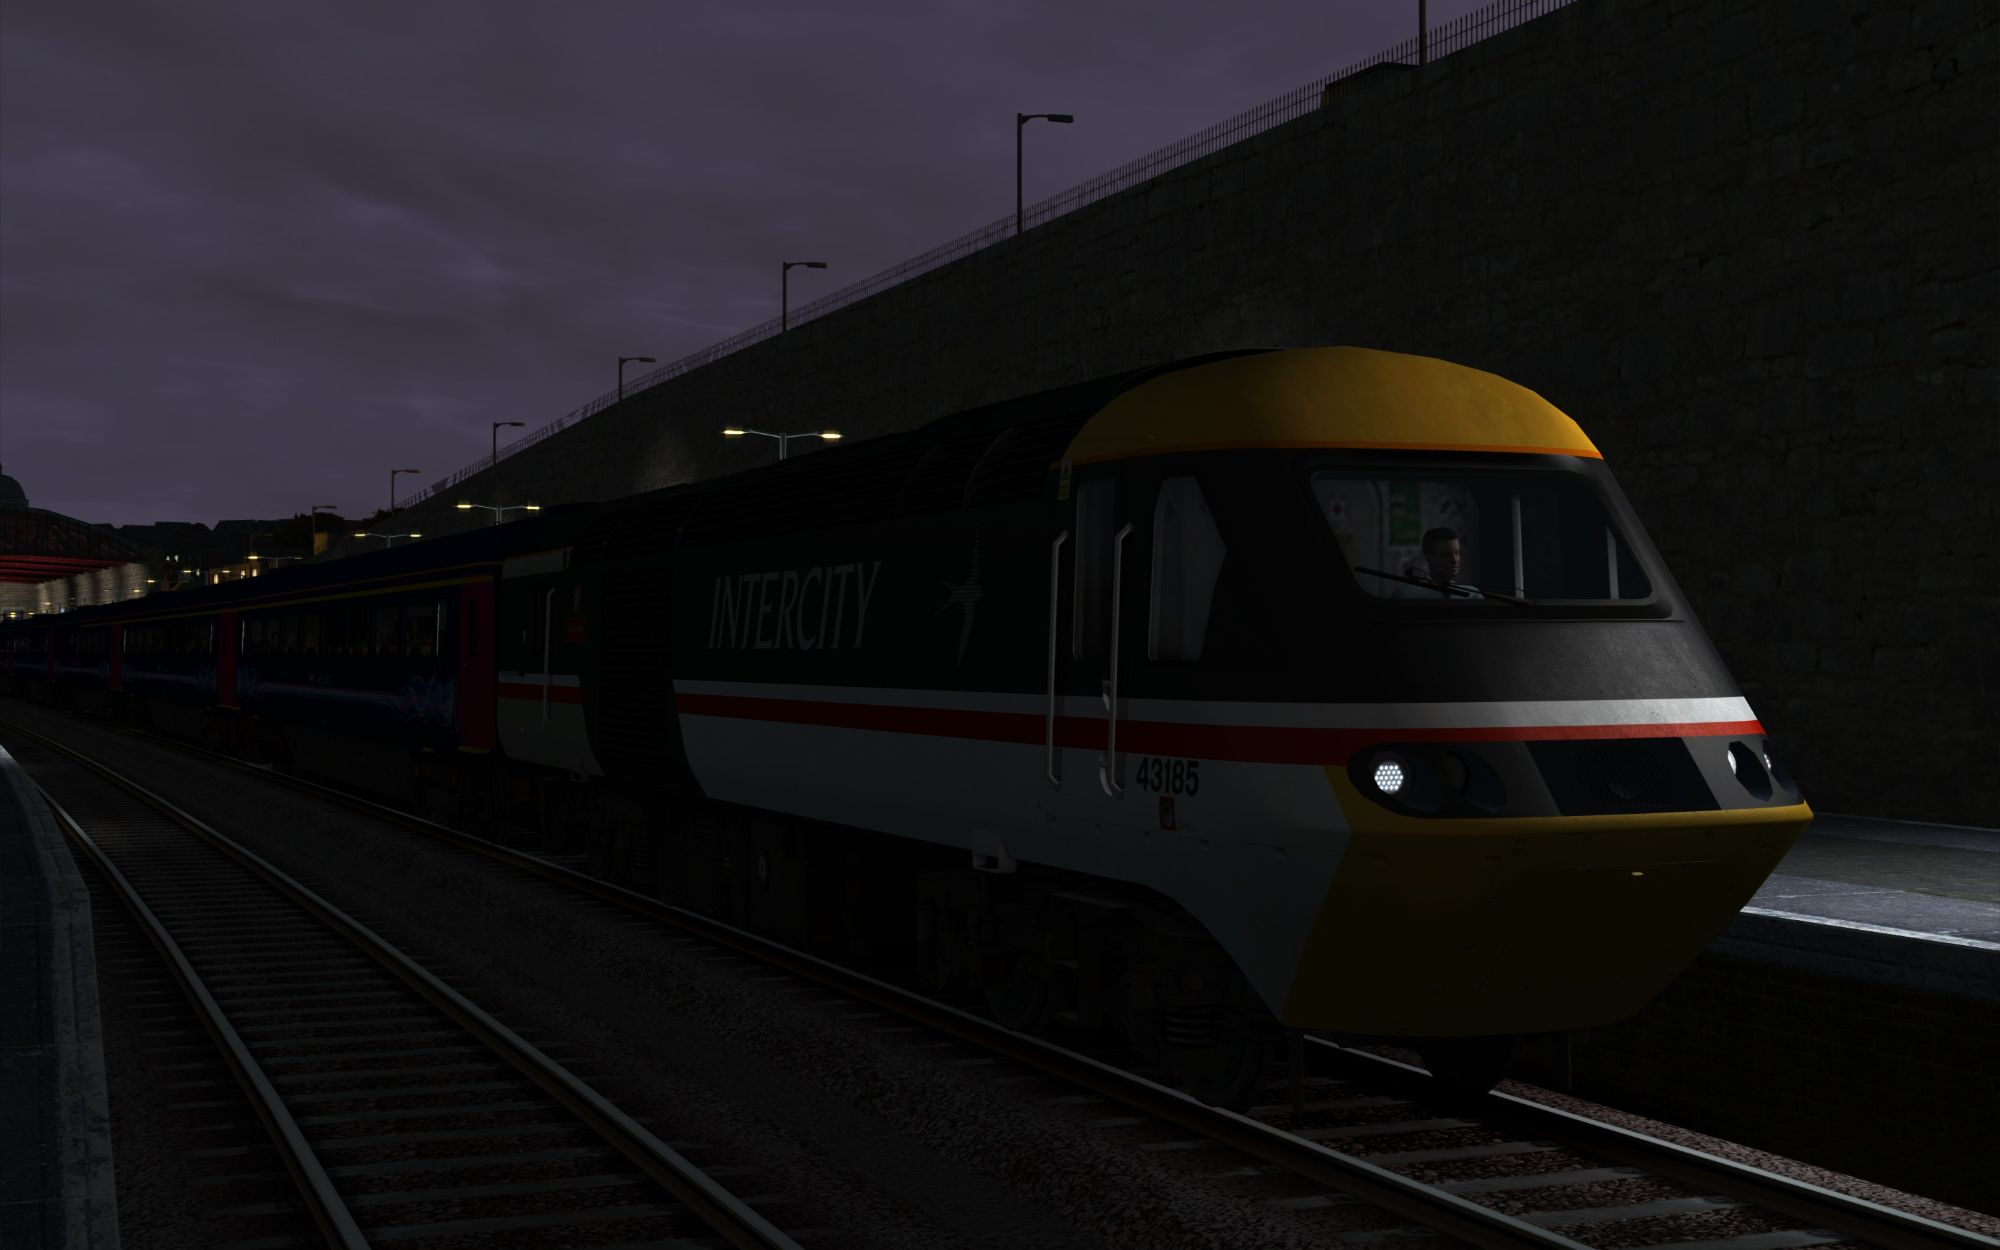 Image showing screenshot of the 1A77 - 0541 Penzance to London Paddington scenario